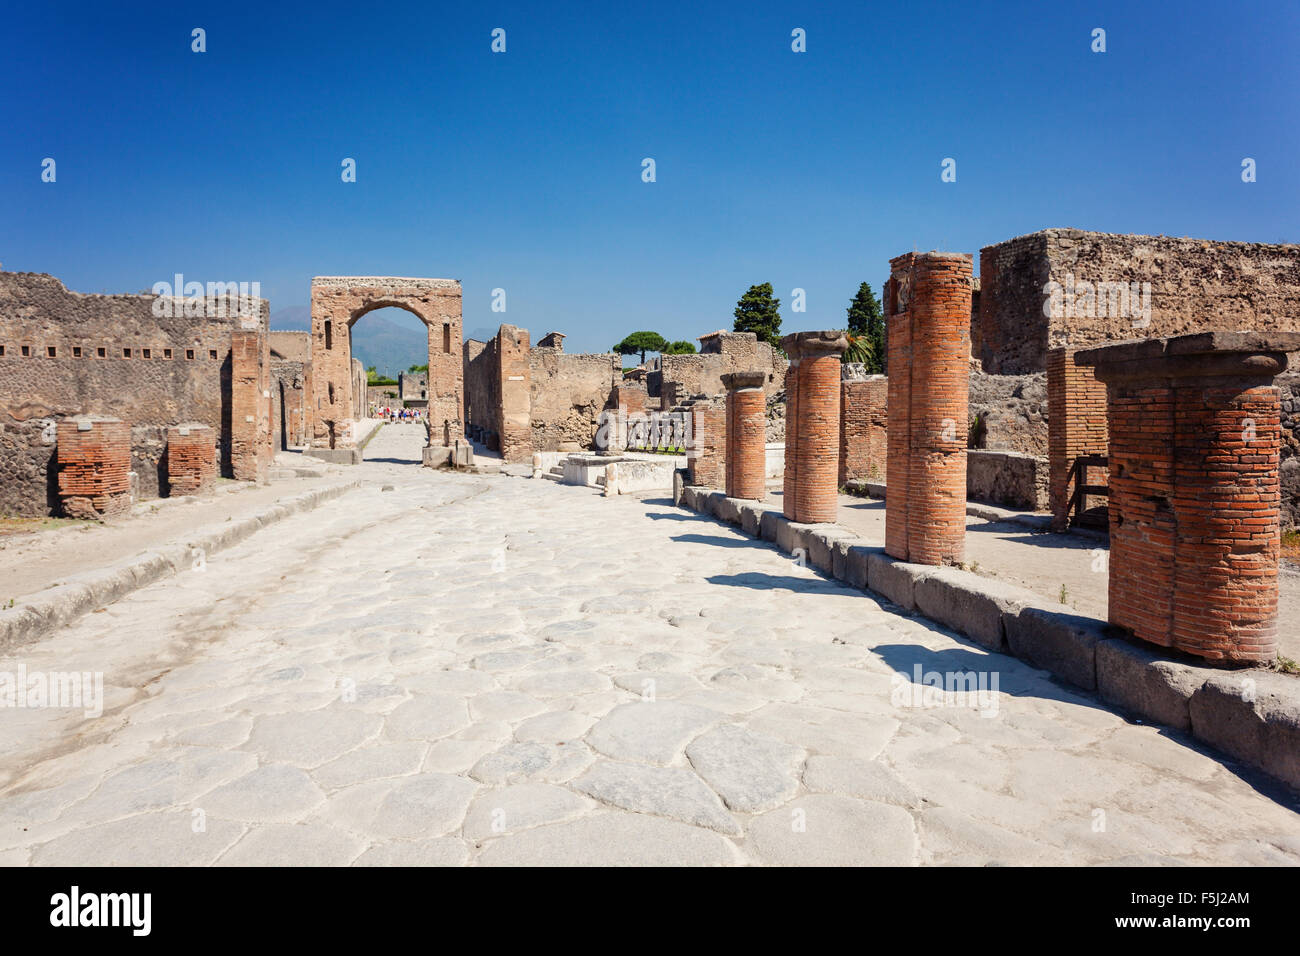 Arch of Drusus neirby forum of Pompei, Italy - Stock Image